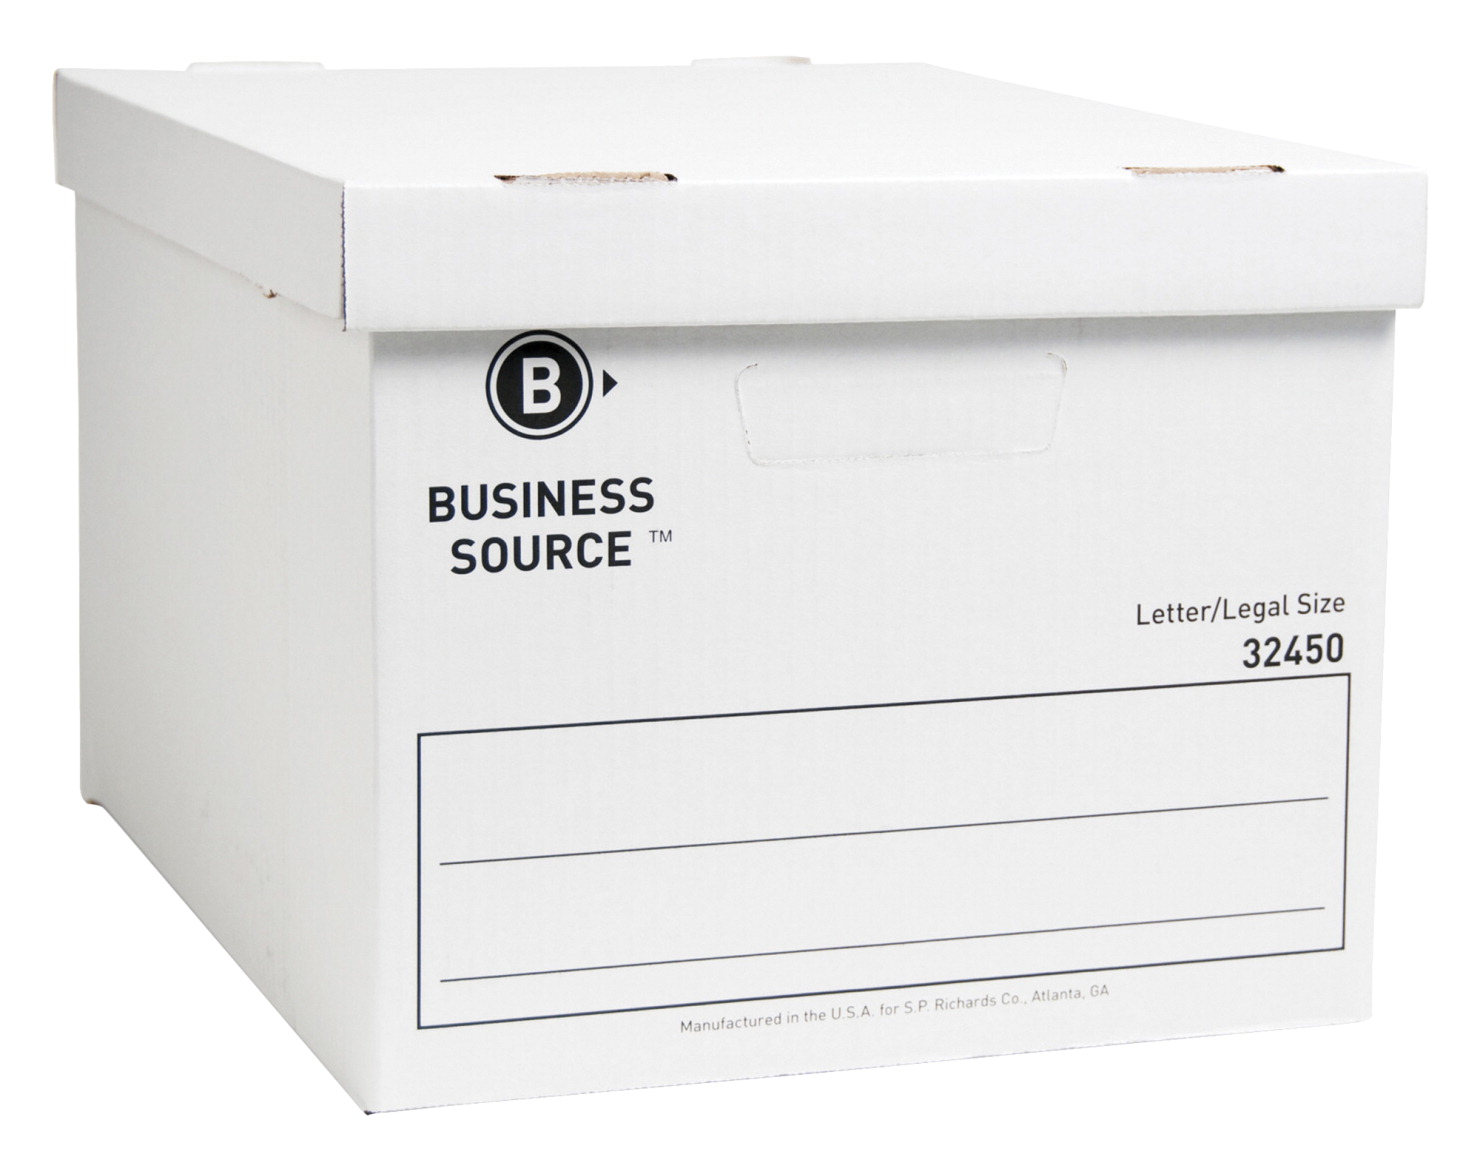 Business Source Storage Boxes, Letter/Legal, 400 lb, 12 x 15 x 10 Inches,  Pack of 12, White